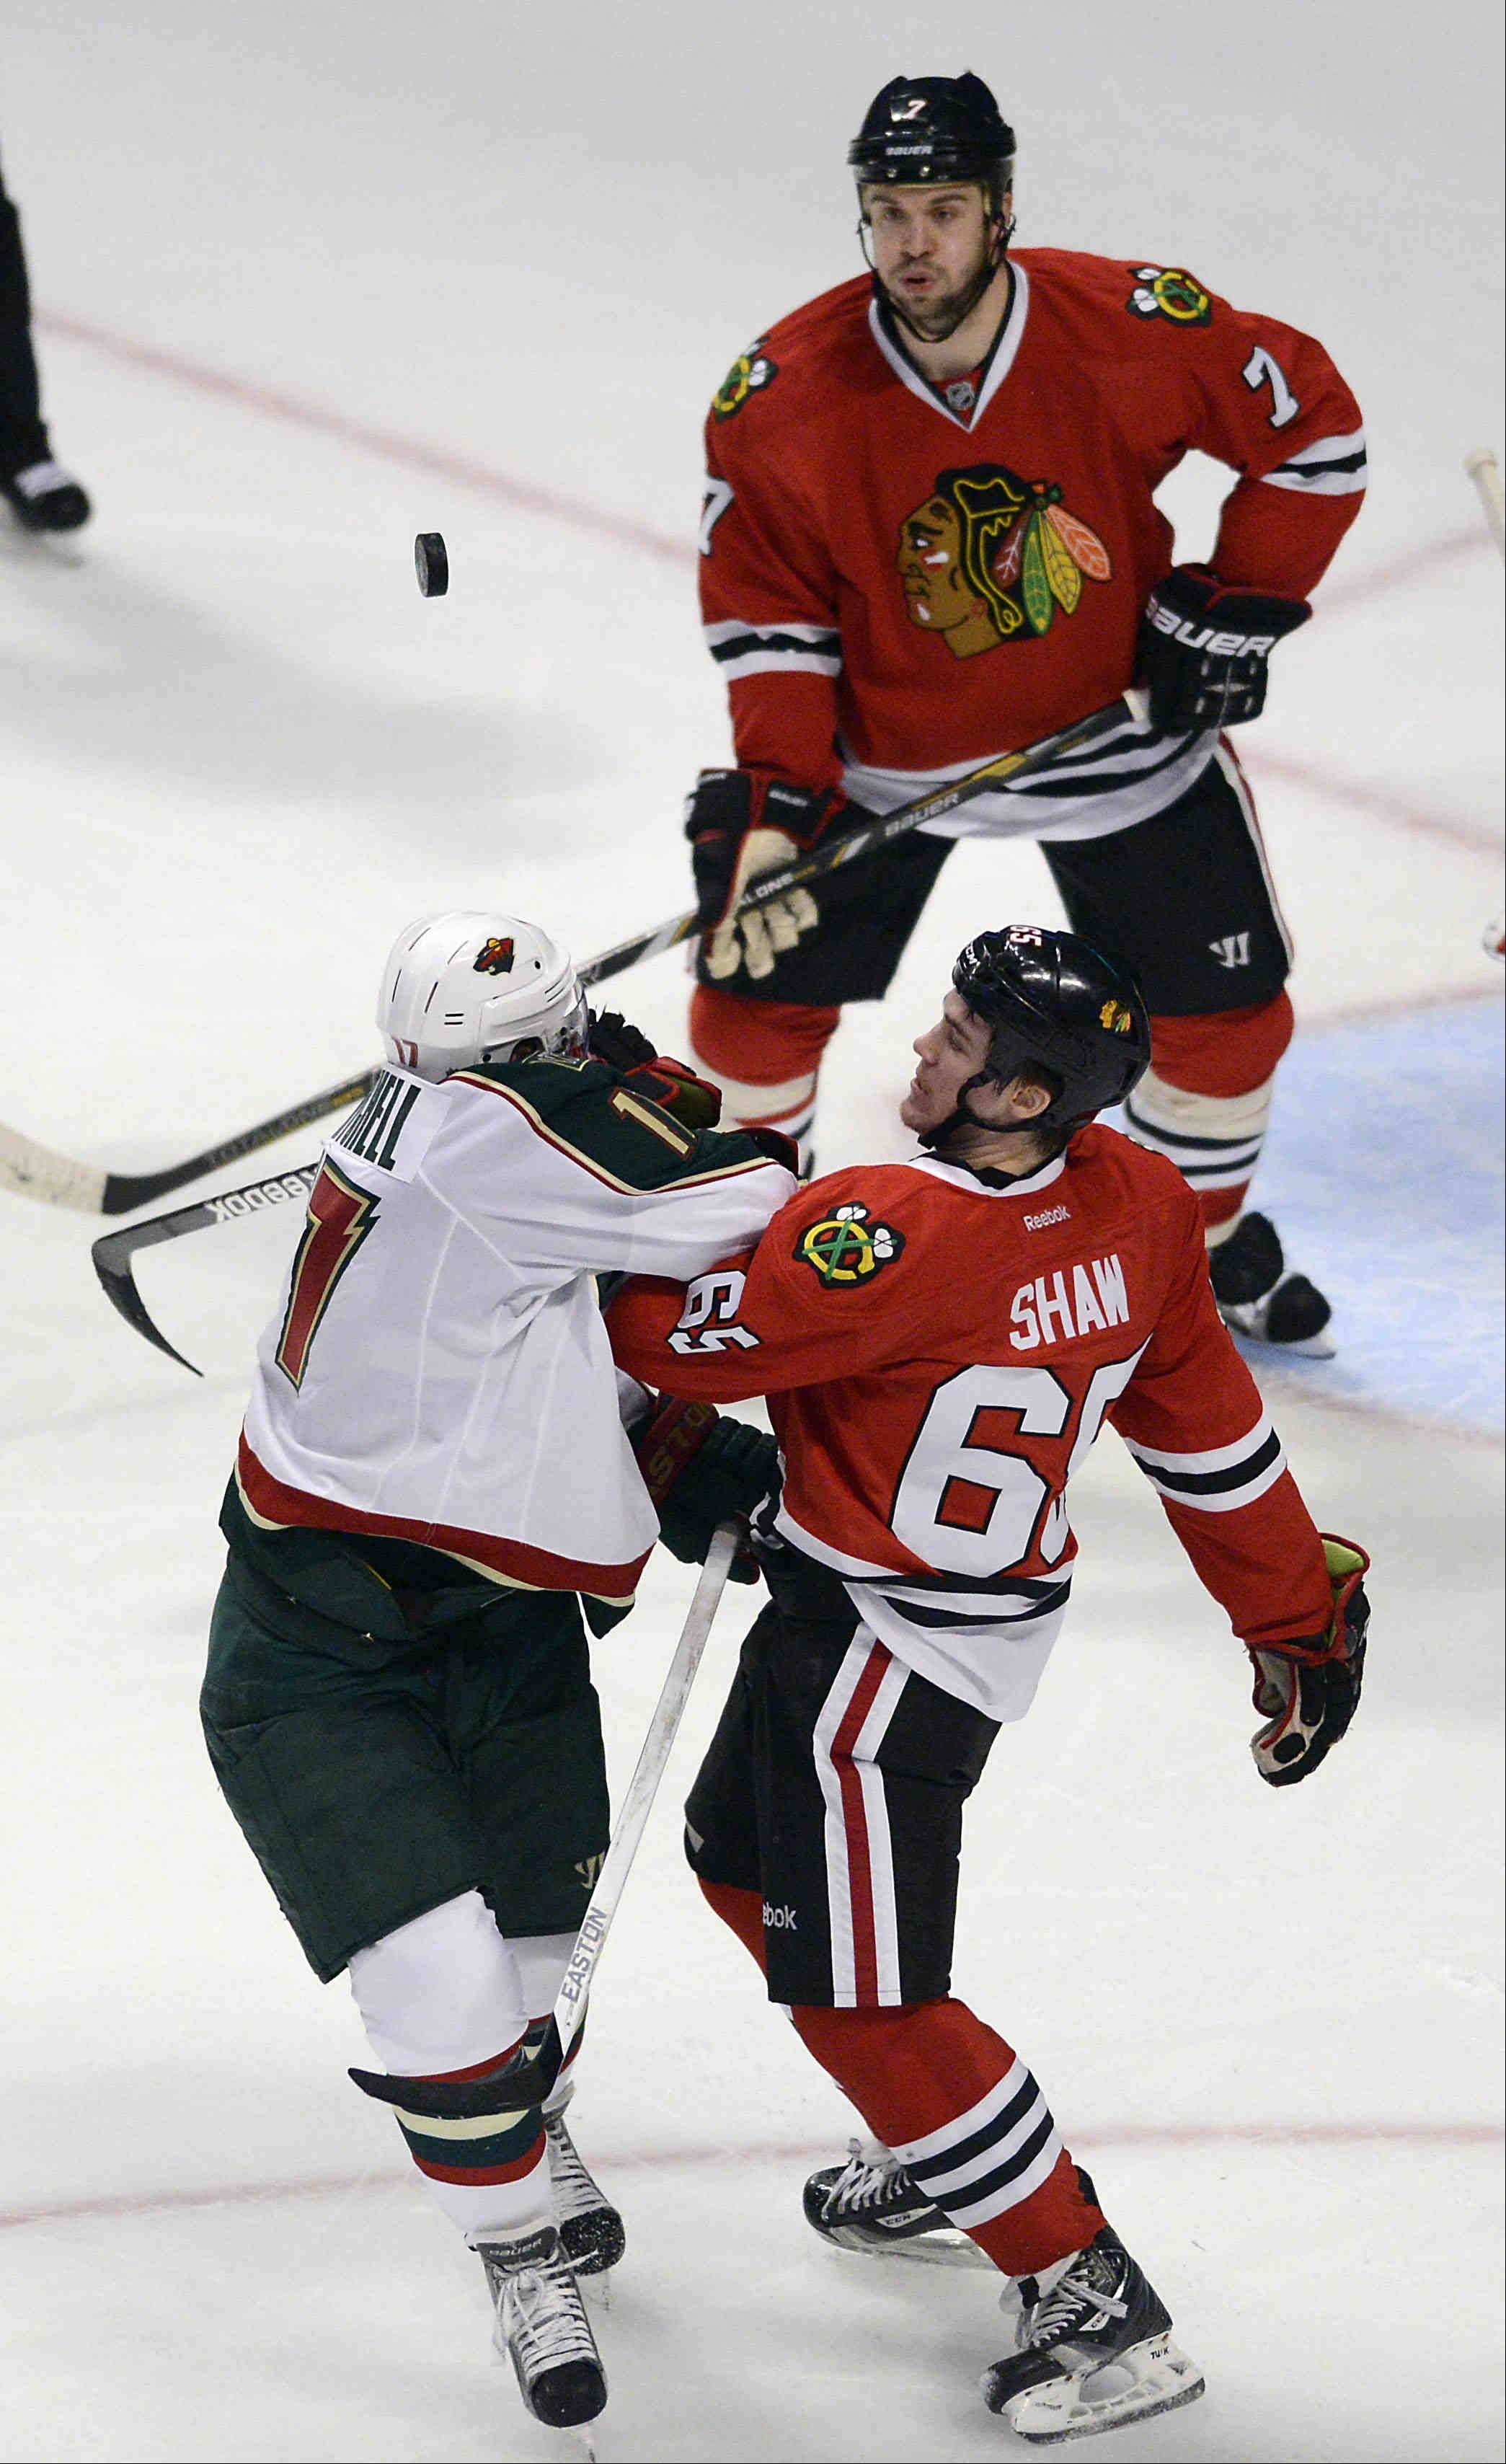 Chicago Blackhawks center Andrew Shaw and Minnesota Wild left wing Torrey Mitchell fight for control of the soaring puck as Chicago Blackhawks defenseman Brent Seabrook watches.